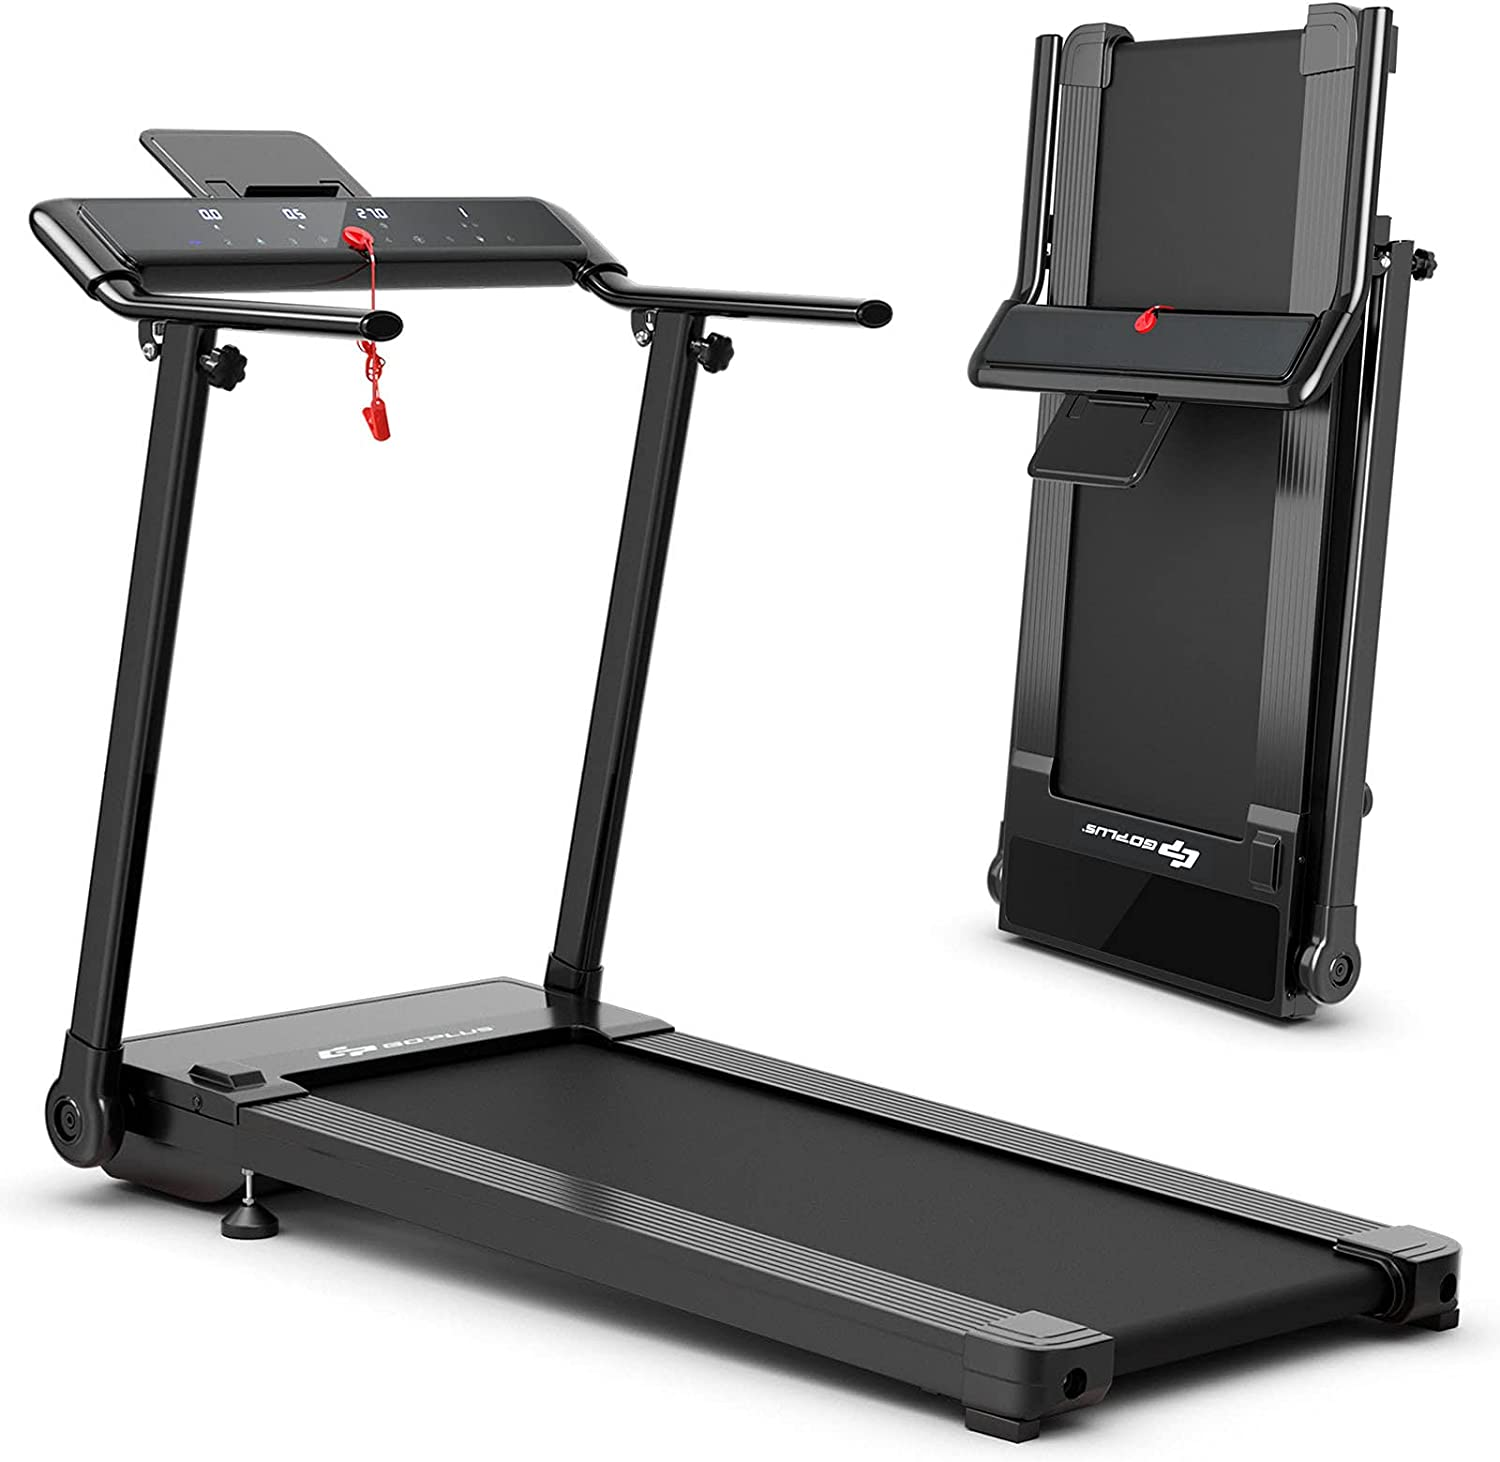 OFFicial store Goplus 70% OFF Outlet Folding Treadmill Superfit w Electric Portable